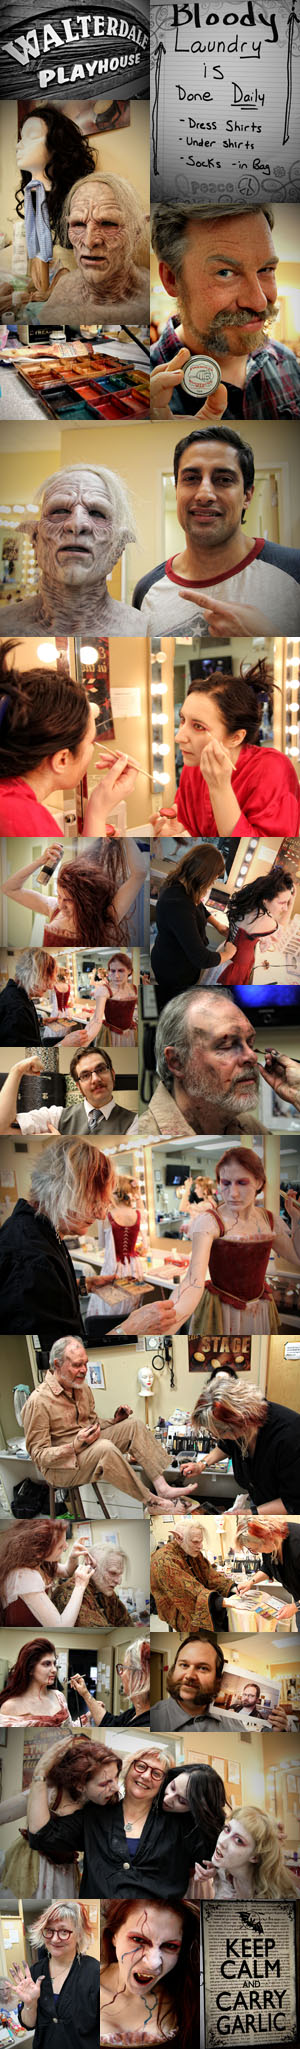 Behind the scenes of Dracula at Walterdale Playhouse.  Photos taken by Nanc Price